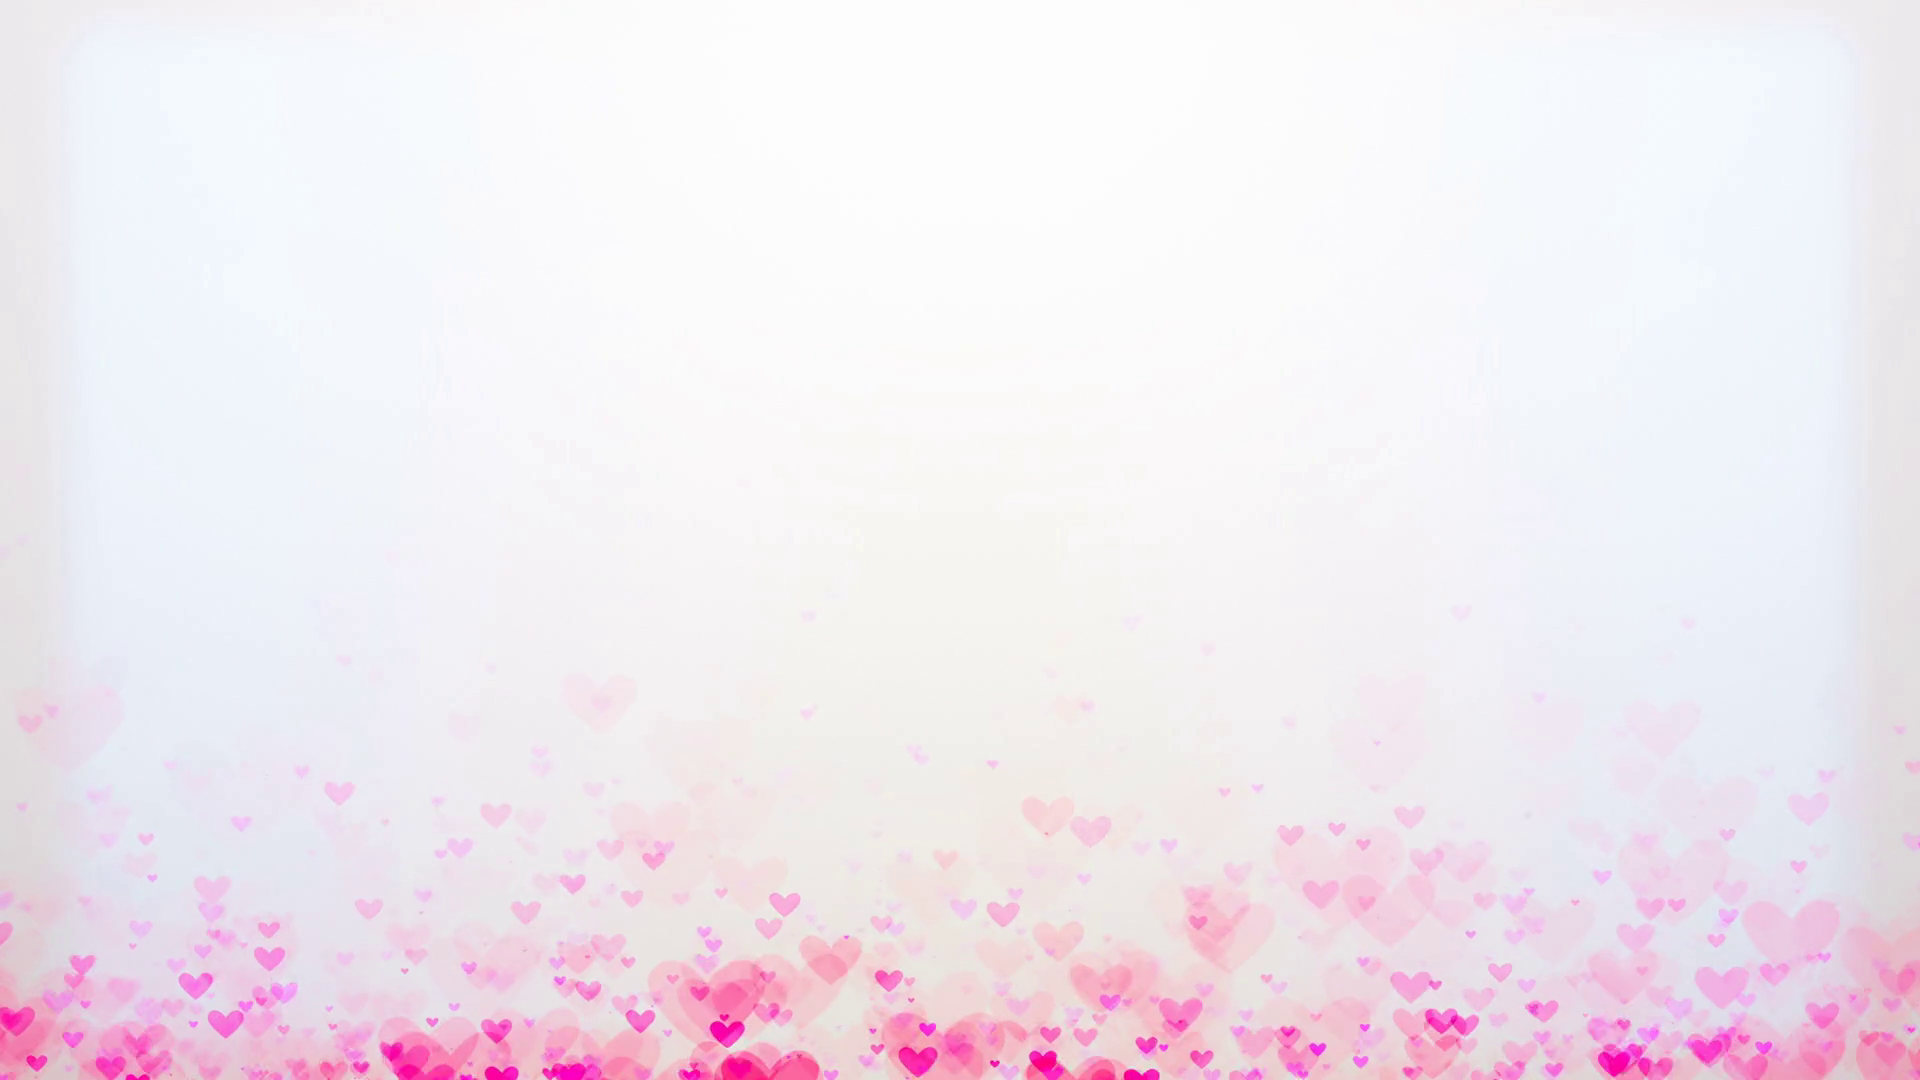 Romantic Backgrounds Png - Romantic background png 1 » PNG Image